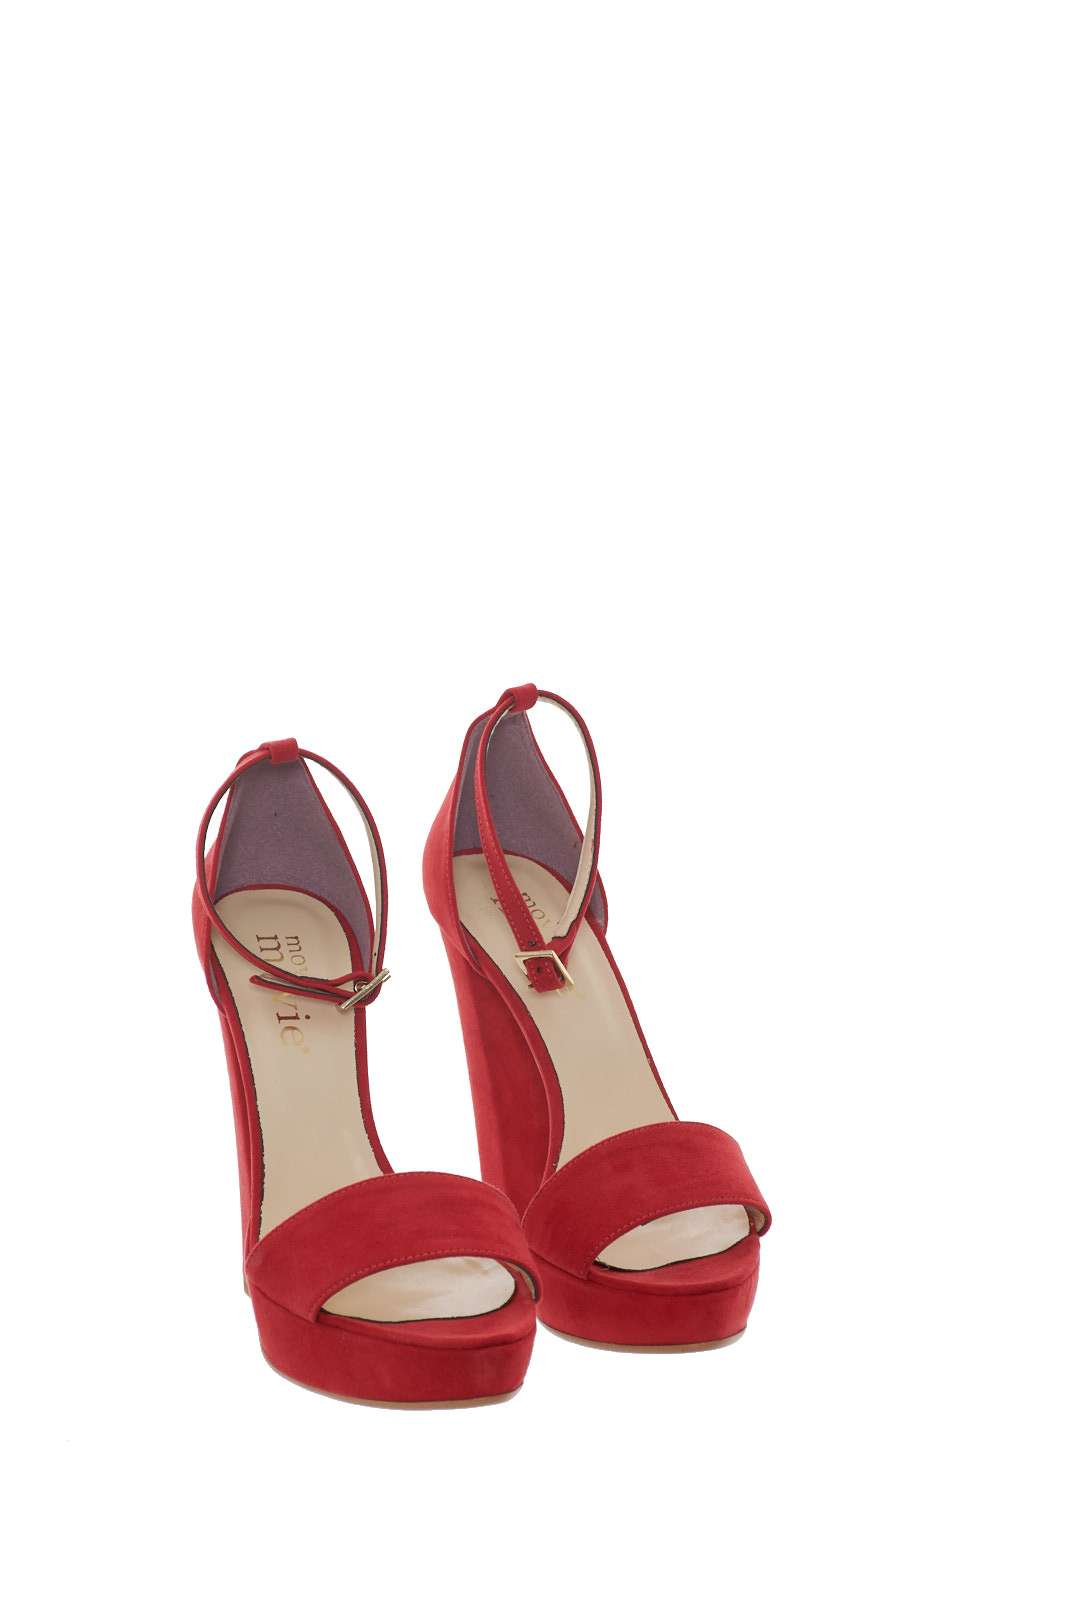 https://www.parmax.com/media/catalog/product/a/i/PE-outlet_parmax-sandali-donna-Movie-Collection-0229-C.jpg